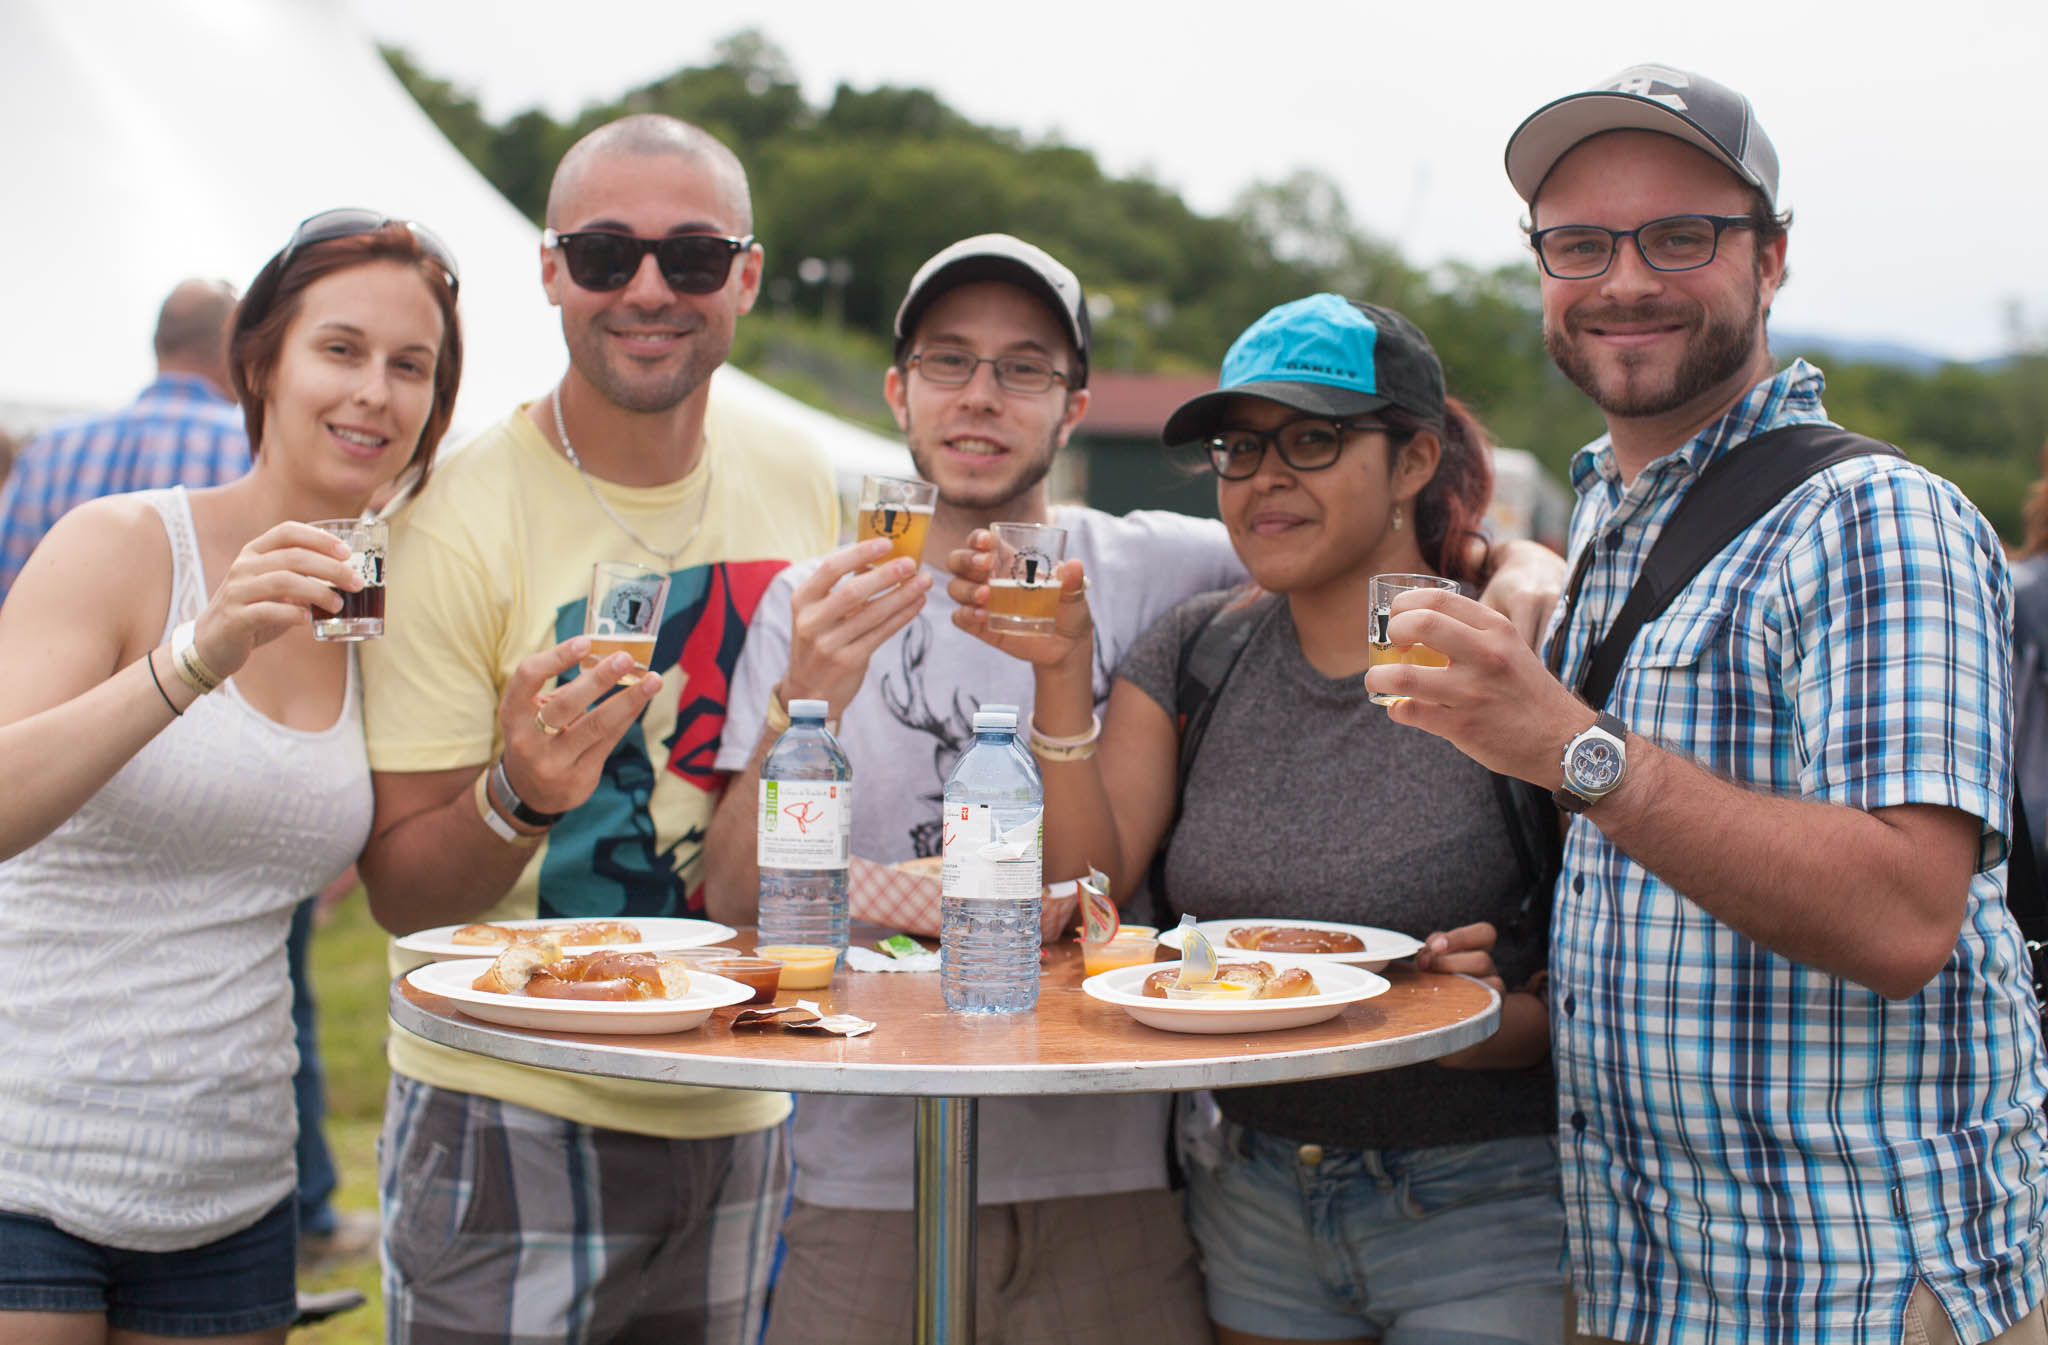 New England Brewfest for Wine Lovers